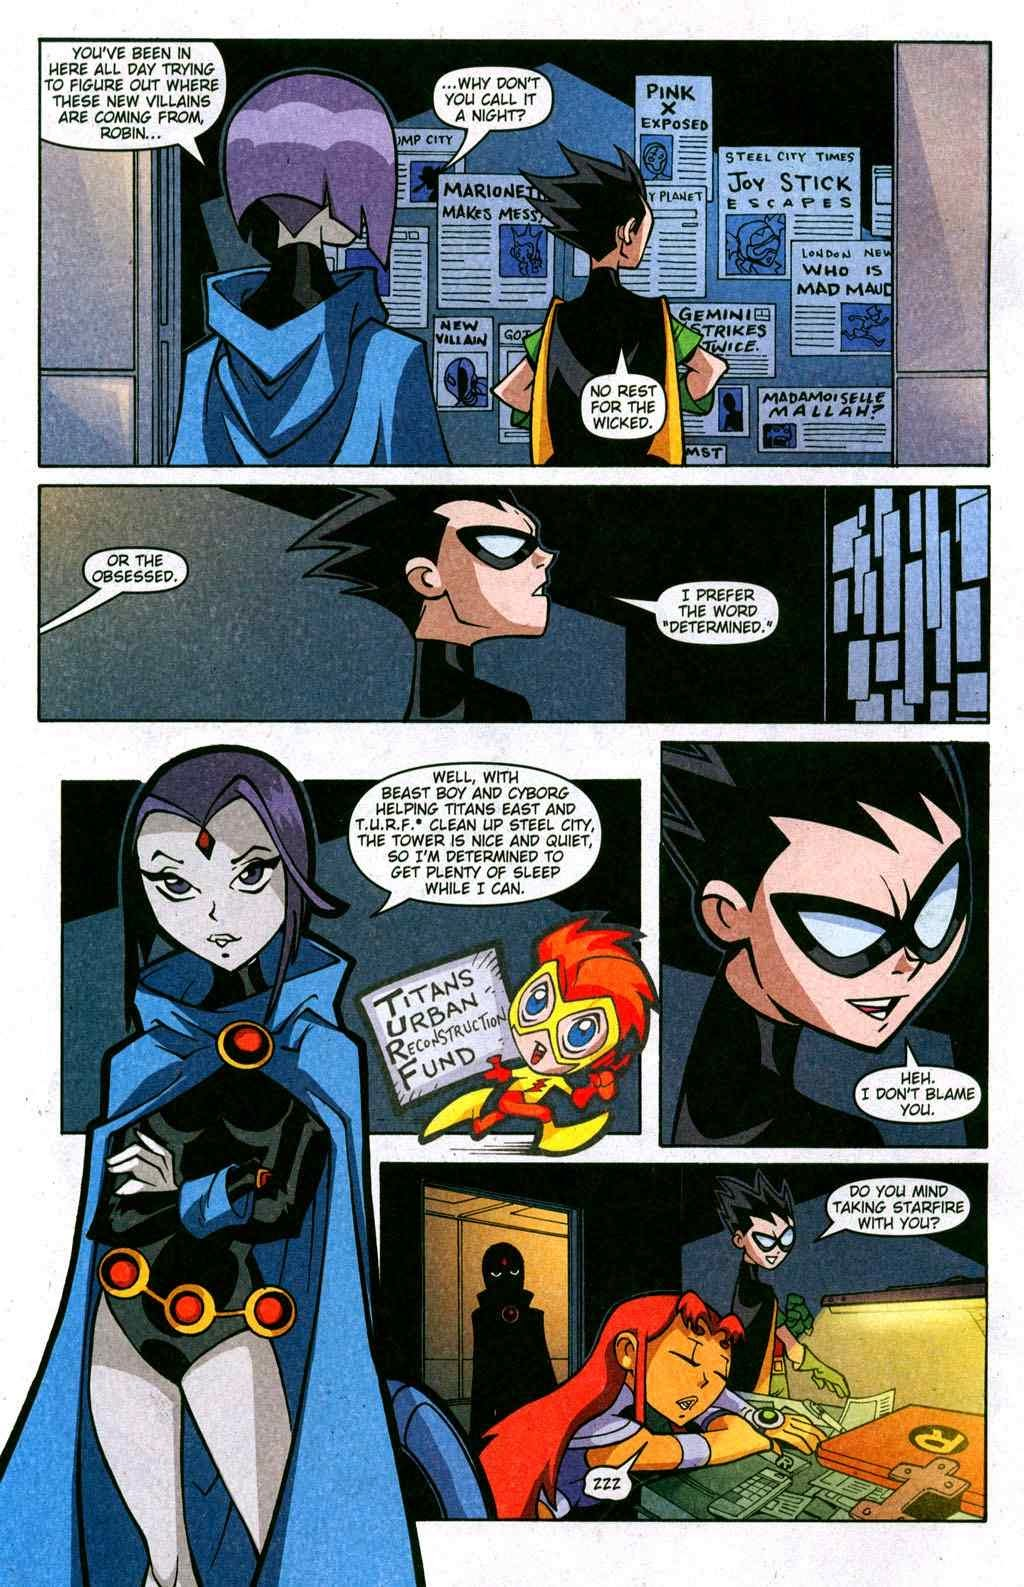 Sincere Girl Wallpaper Teen Titans Go Comic Book Series Teen Titans Go Issue